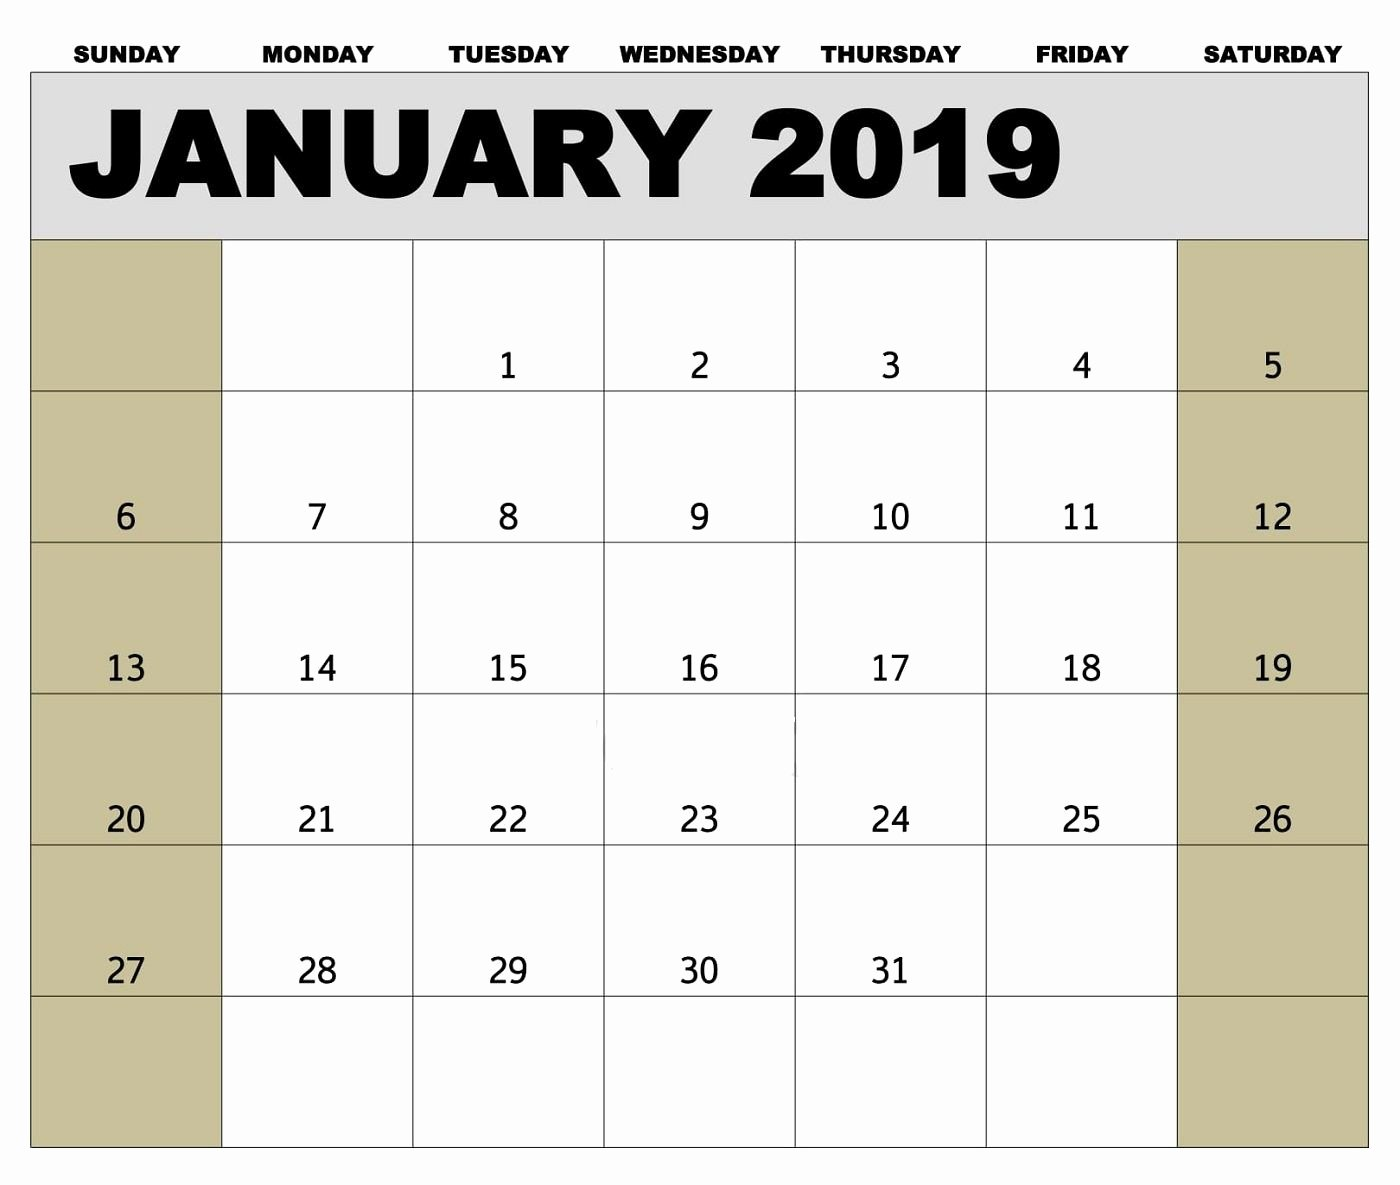 Weekly Payroll Calendar 2019 Beautiful January 2019 Biweekly Payroll Calendar Template for